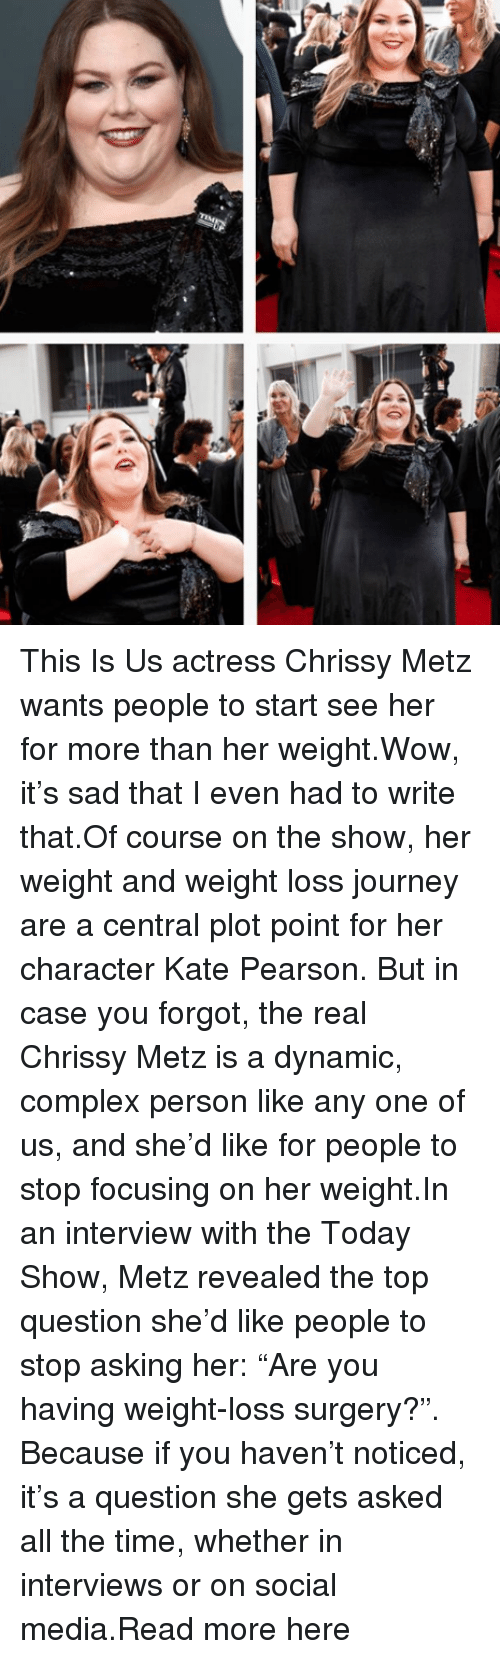 """chrissy: This Is Us actress Chrissy Metz wants people to start see her for more than her weight.Wow, it's sad that I even had to write that.Of course on the show, her weight and weight loss journey are a central plot point for her character Kate Pearson. But in case you forgot, the real Chrissy Metz is a dynamic, complex person like any one of us, and she'd like for people to stop focusing on her weight.In an interview with the Today Show, Metz revealed the top question she'd like people to stop asking her: """"Are you having weight-loss surgery?"""". Because if you haven't noticed, it's a question she gets asked all the time, whether in interviews or on social media.Read more here"""